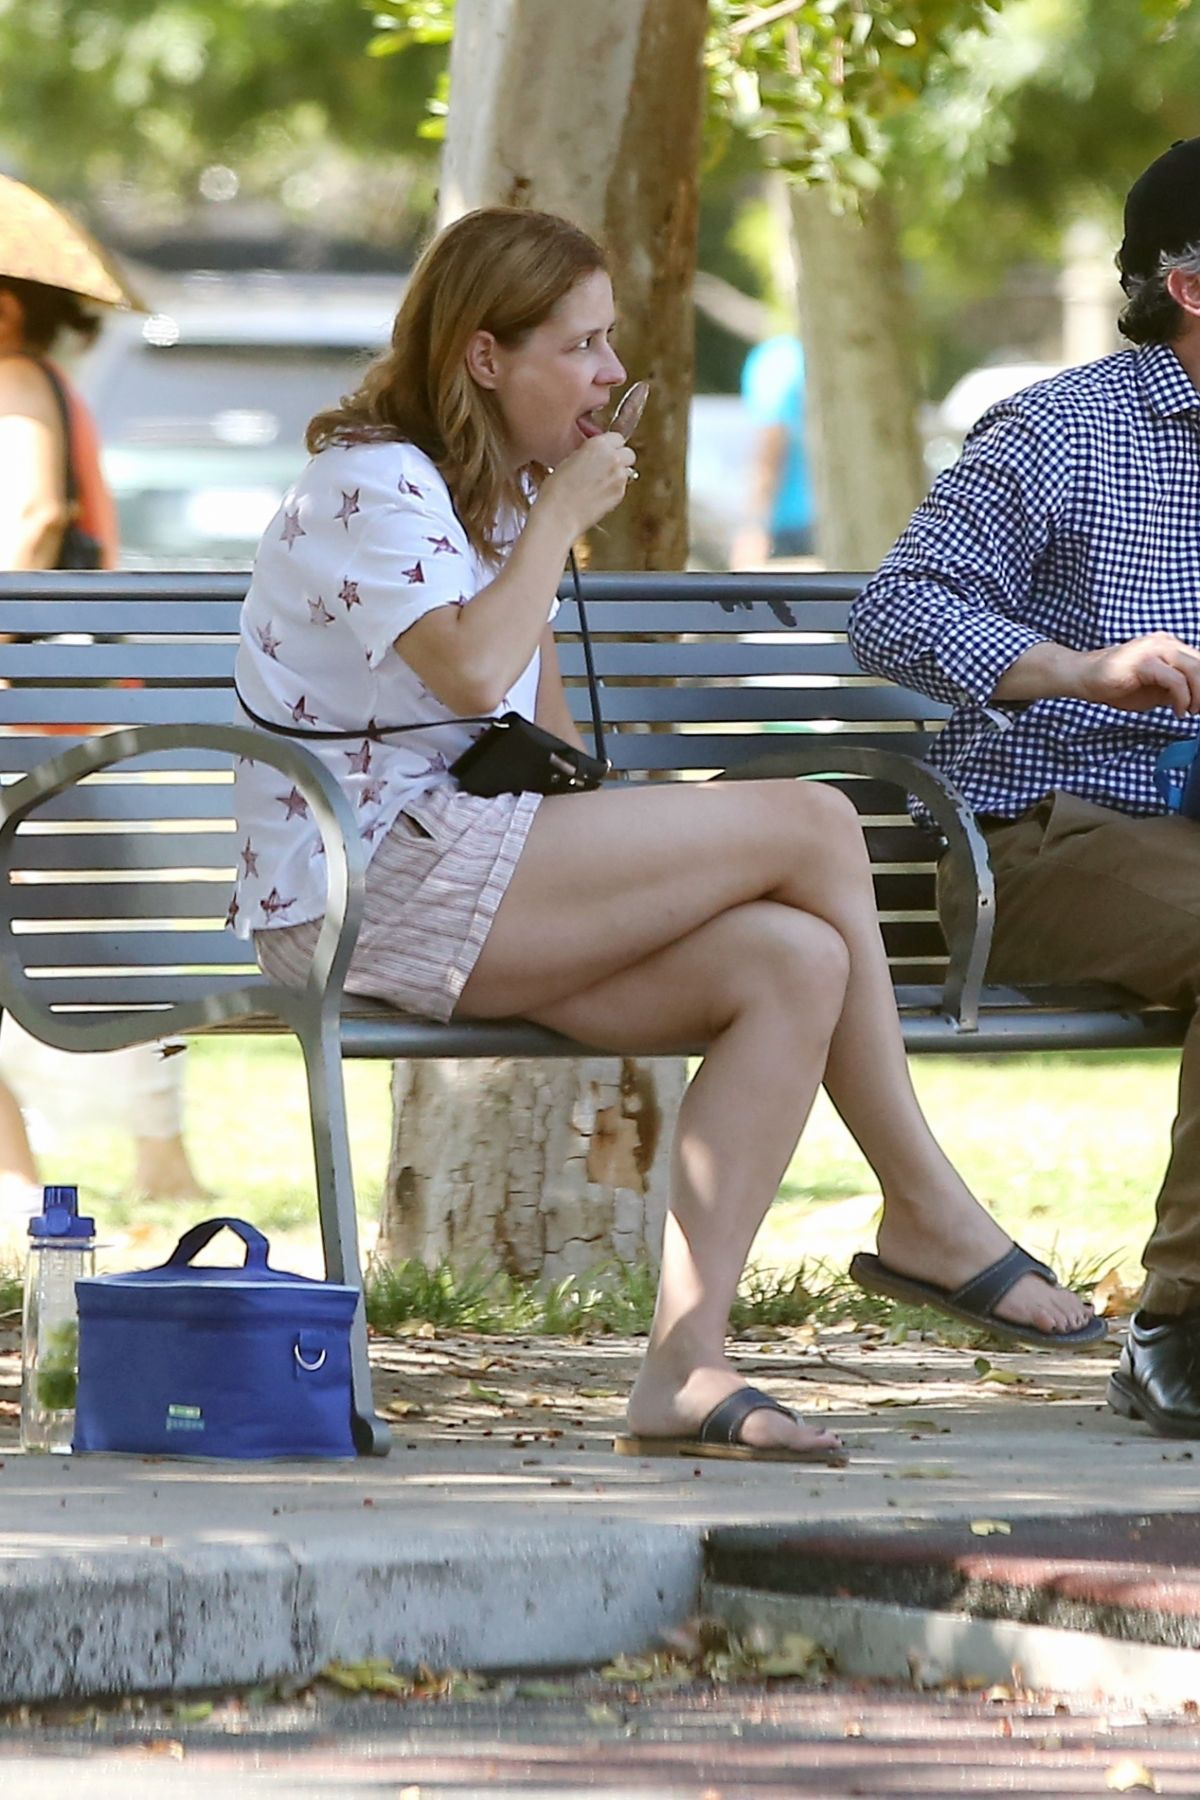 JENNA FISCHER at a Local Park in Los Angeles 09/06/2017